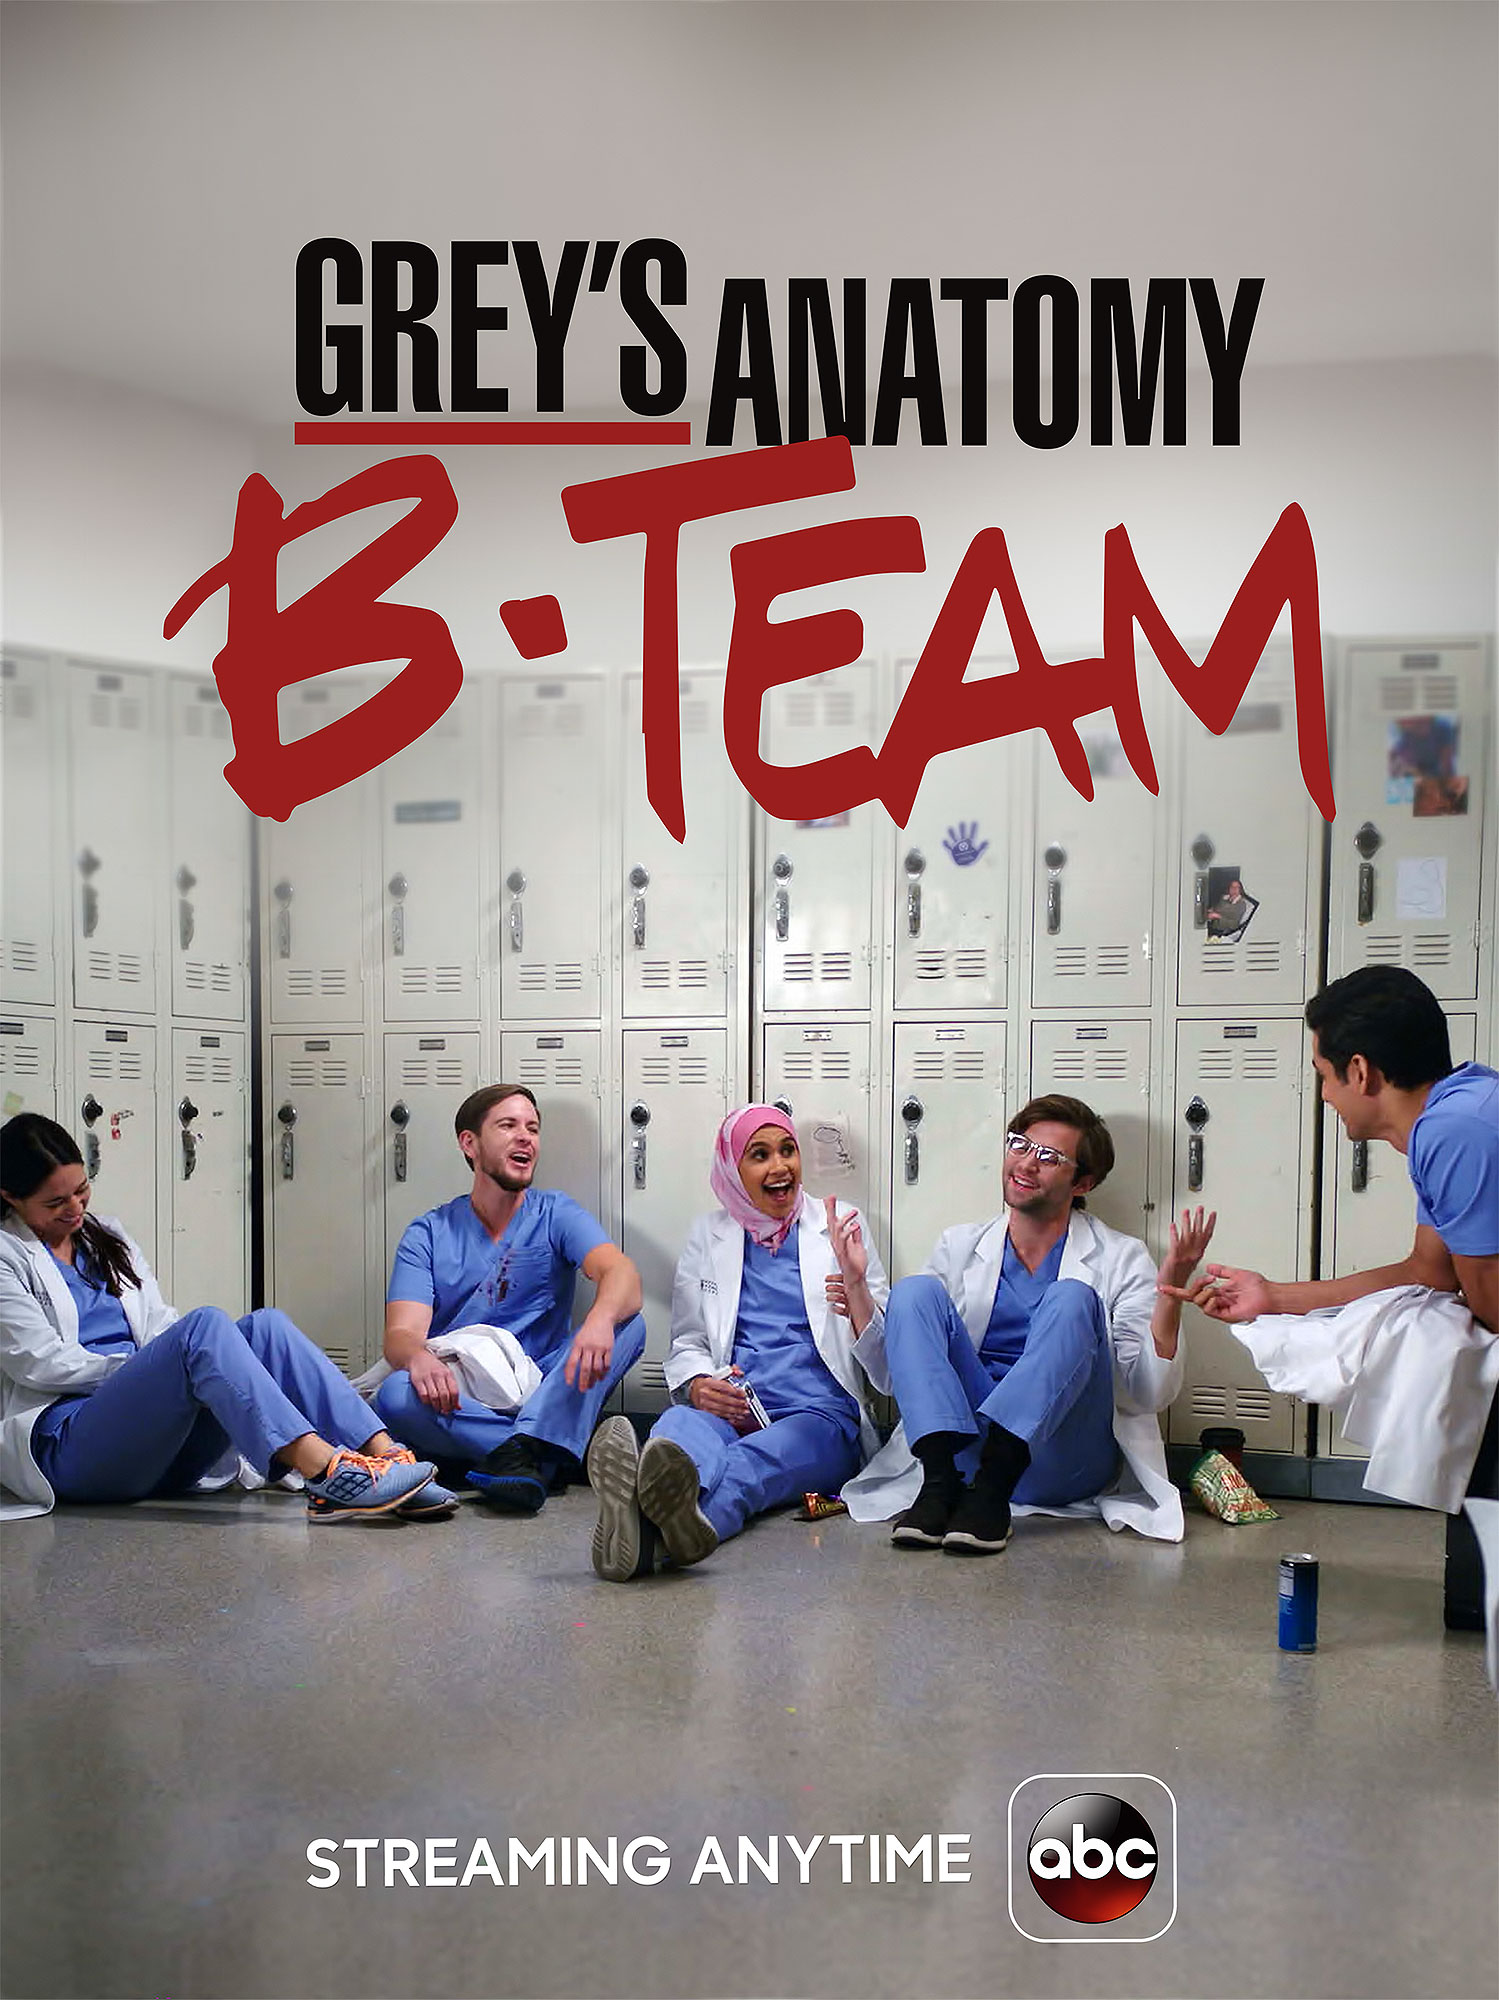 Greys Anatomy B Team Tv Series 2018 Imdb